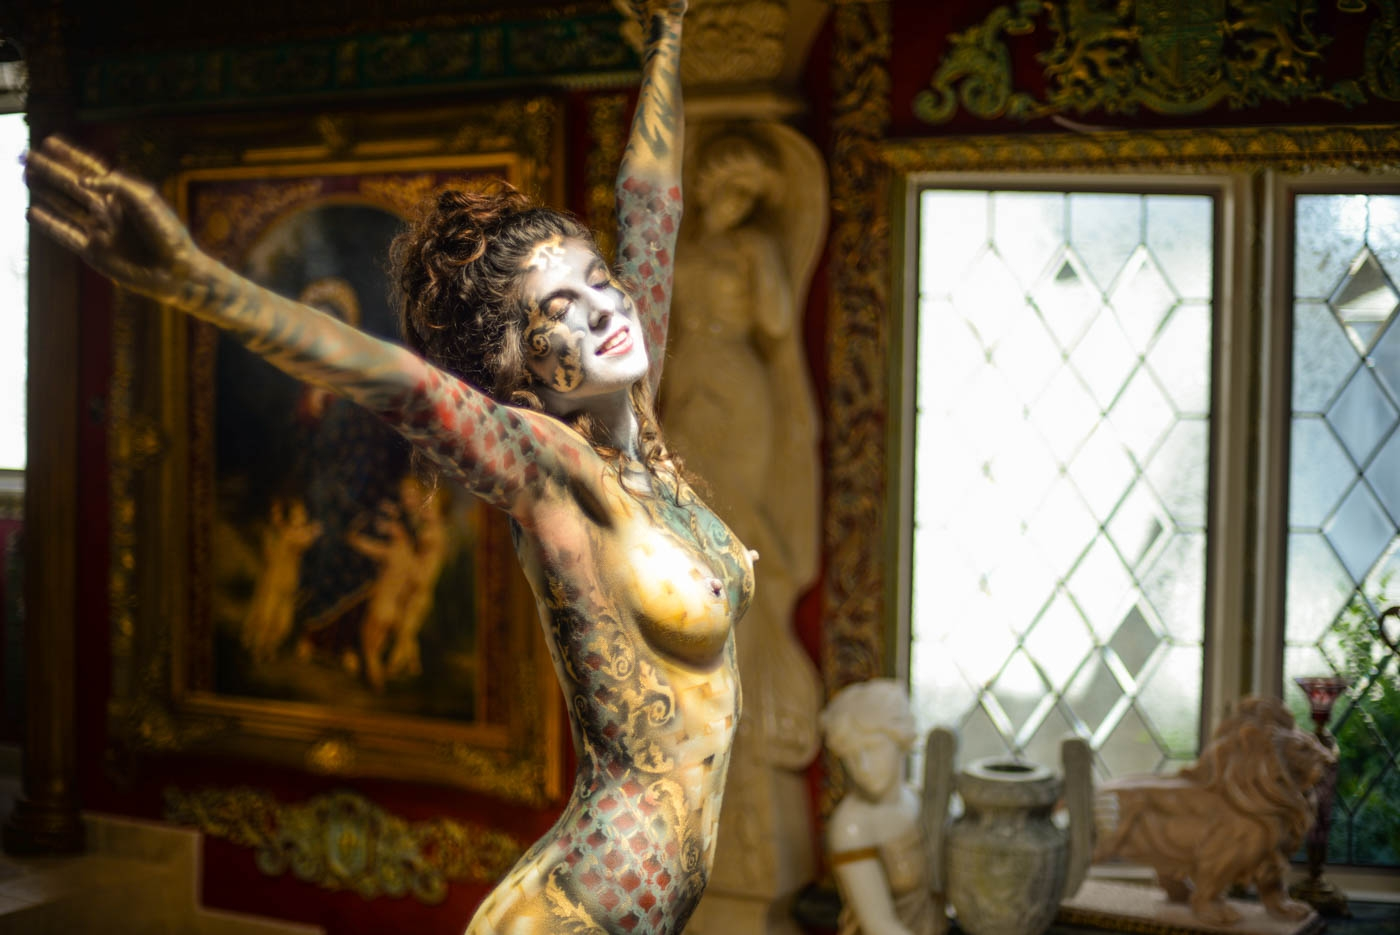 Roustan body paintings on Shadia Elise at the home of Dominic LaFerla